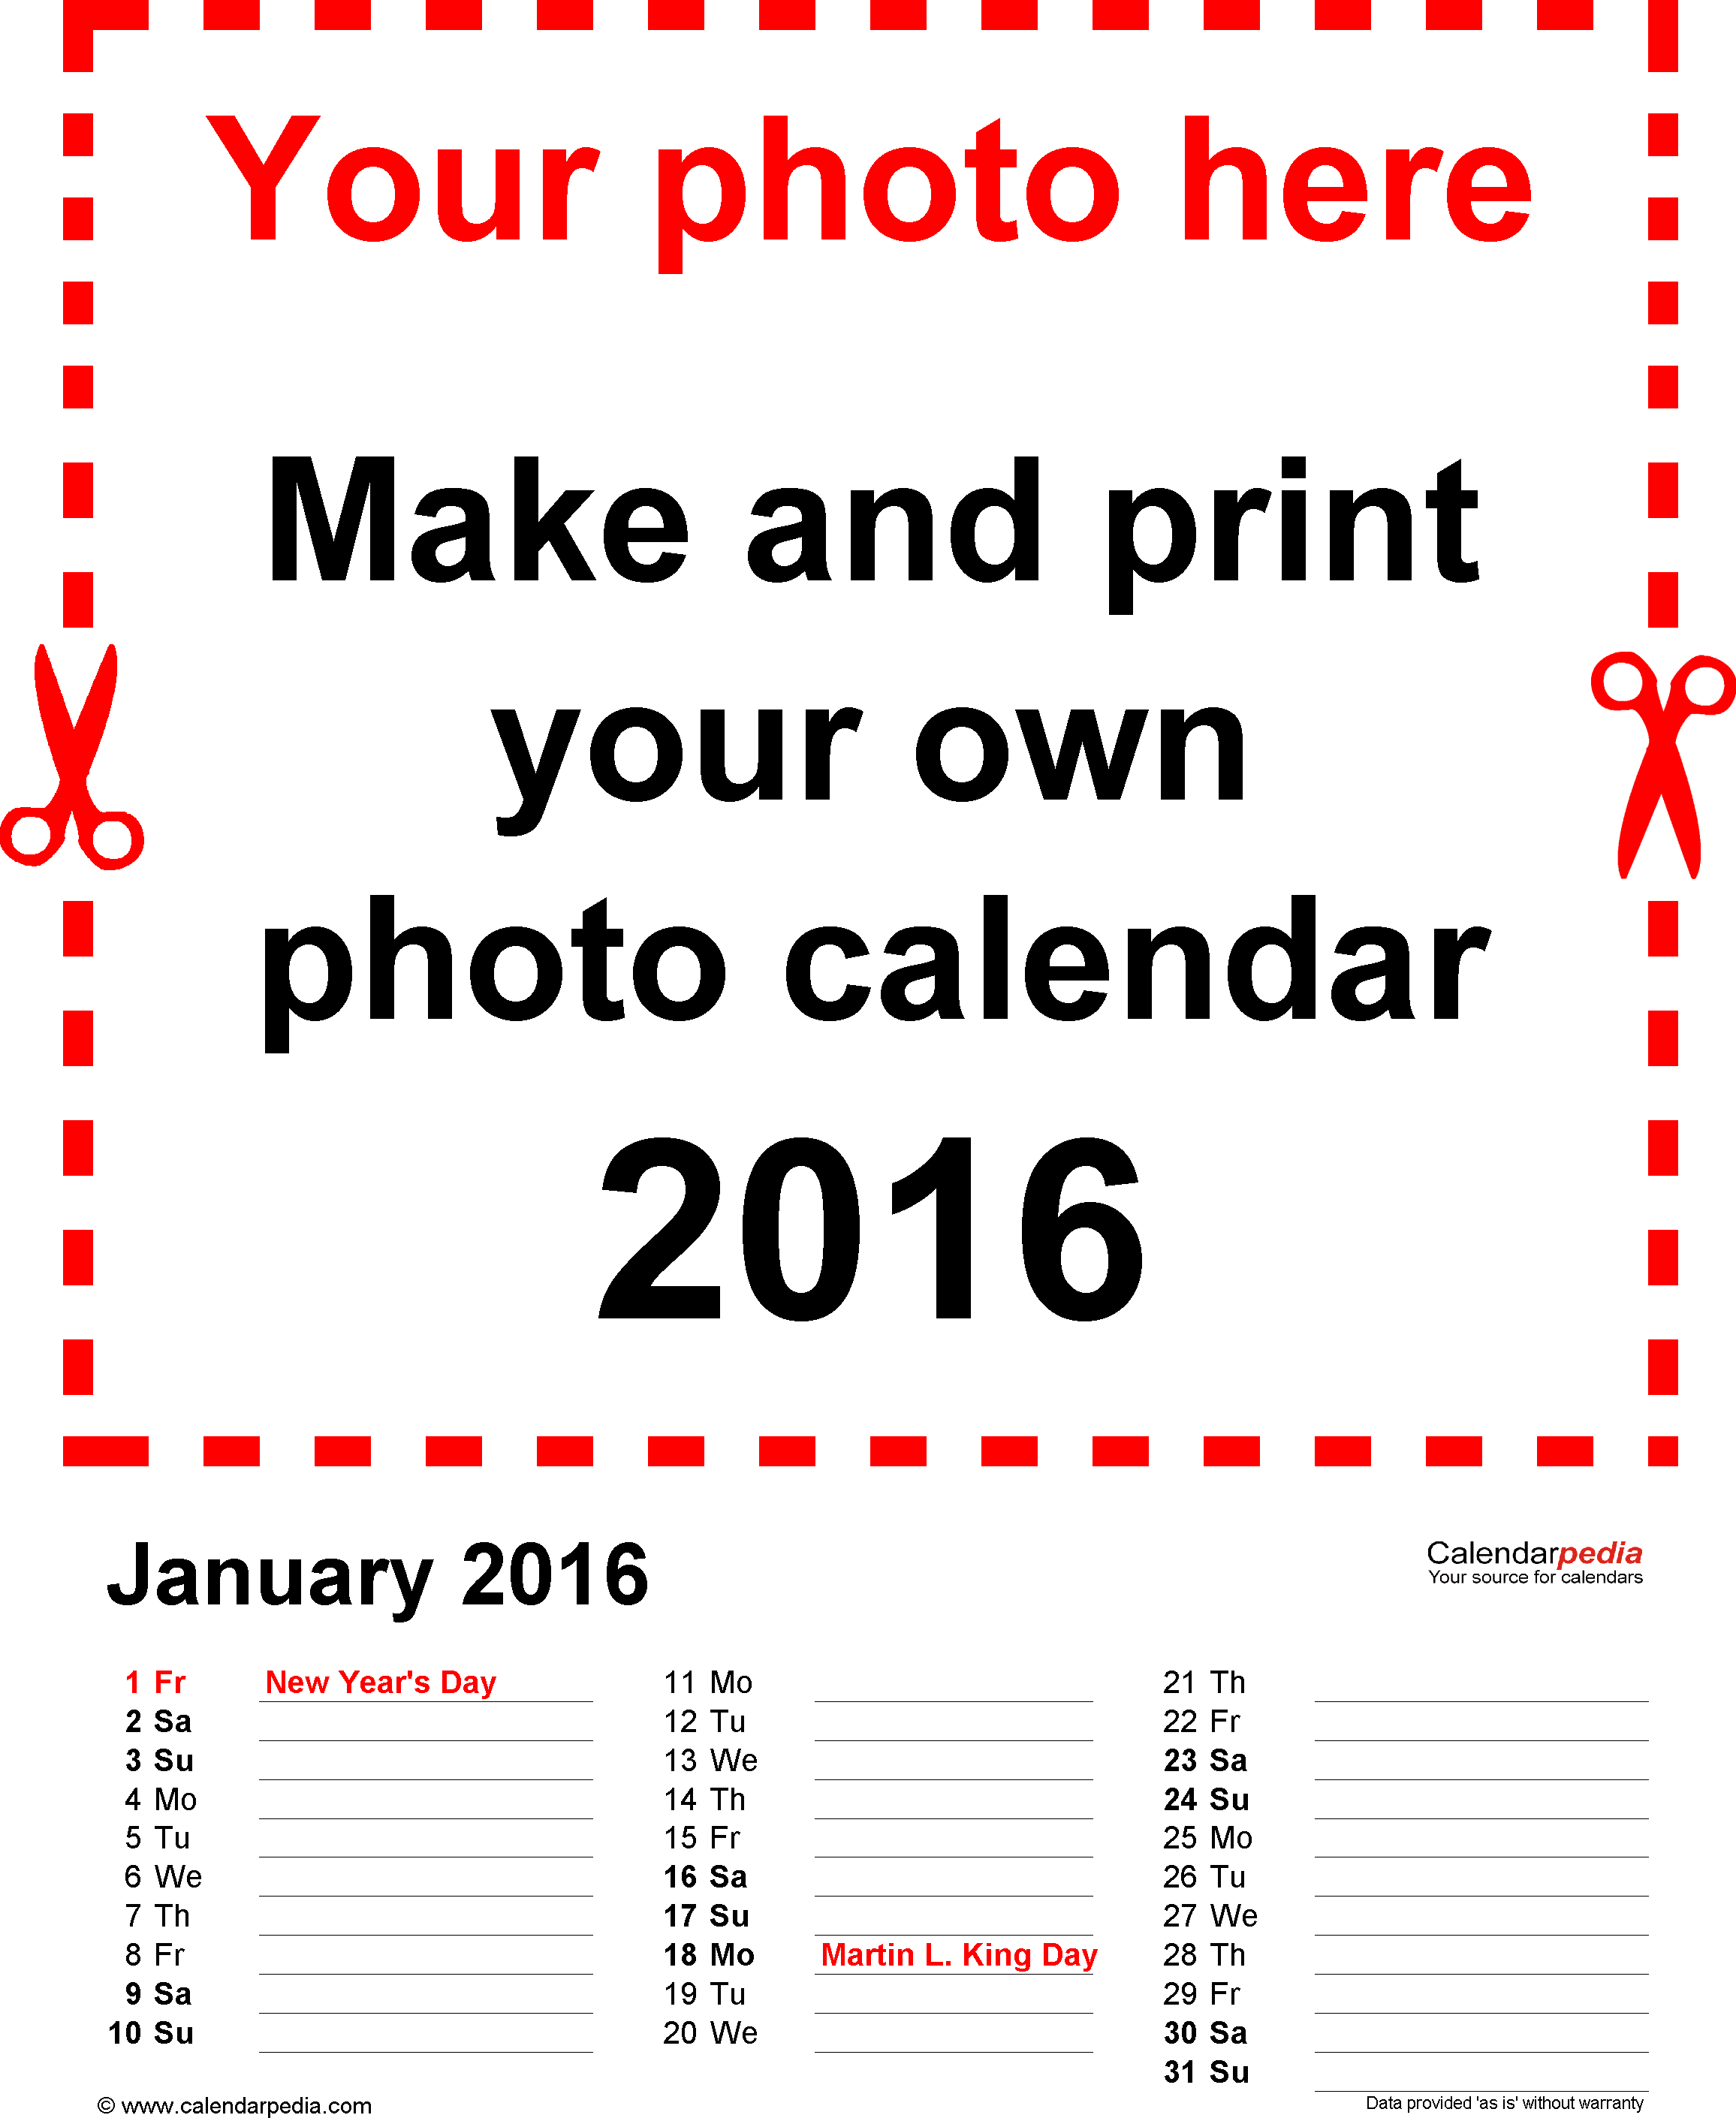 Template 3: Photo calendar 2016 for PDF, 12 pages, portrait format, days in three columns